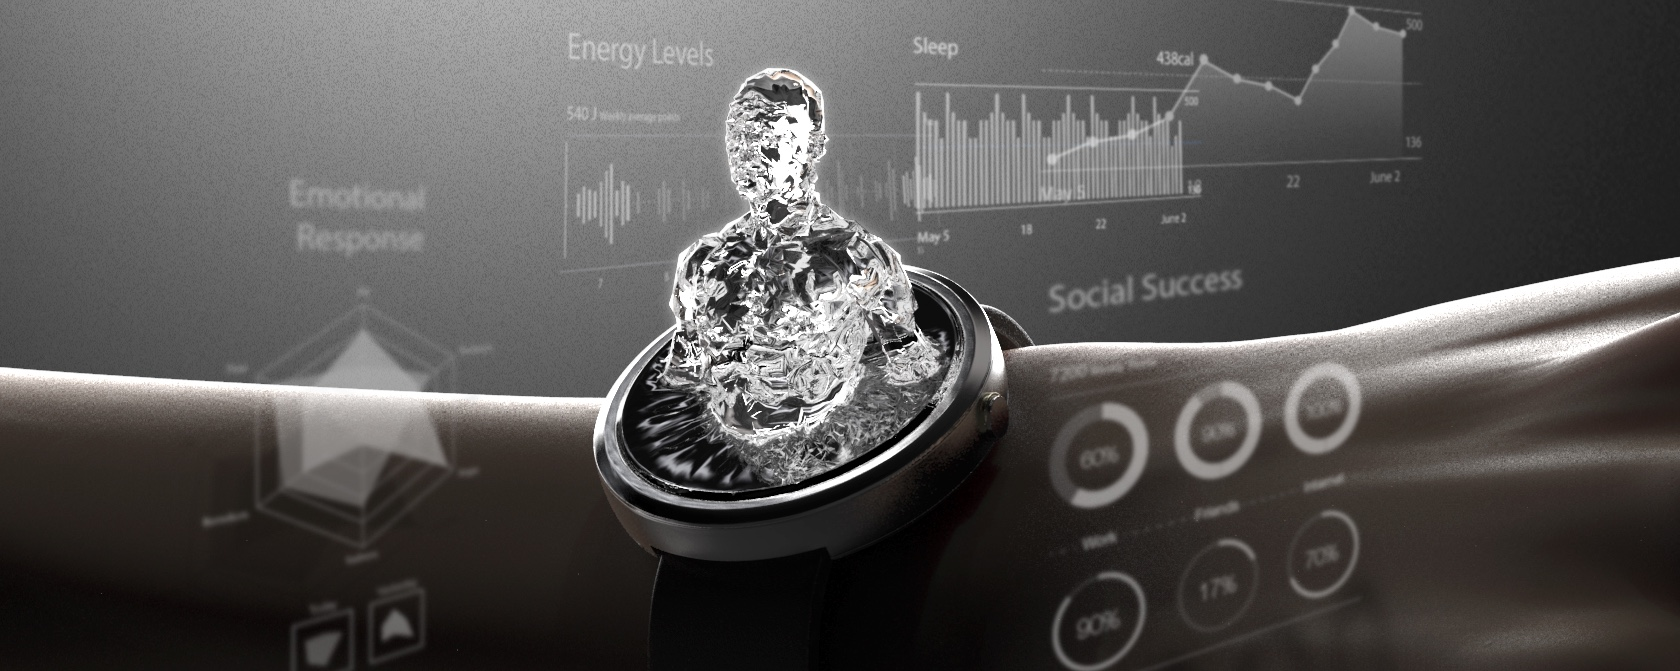 The Self At Your Wrist by Fabio Besti 2